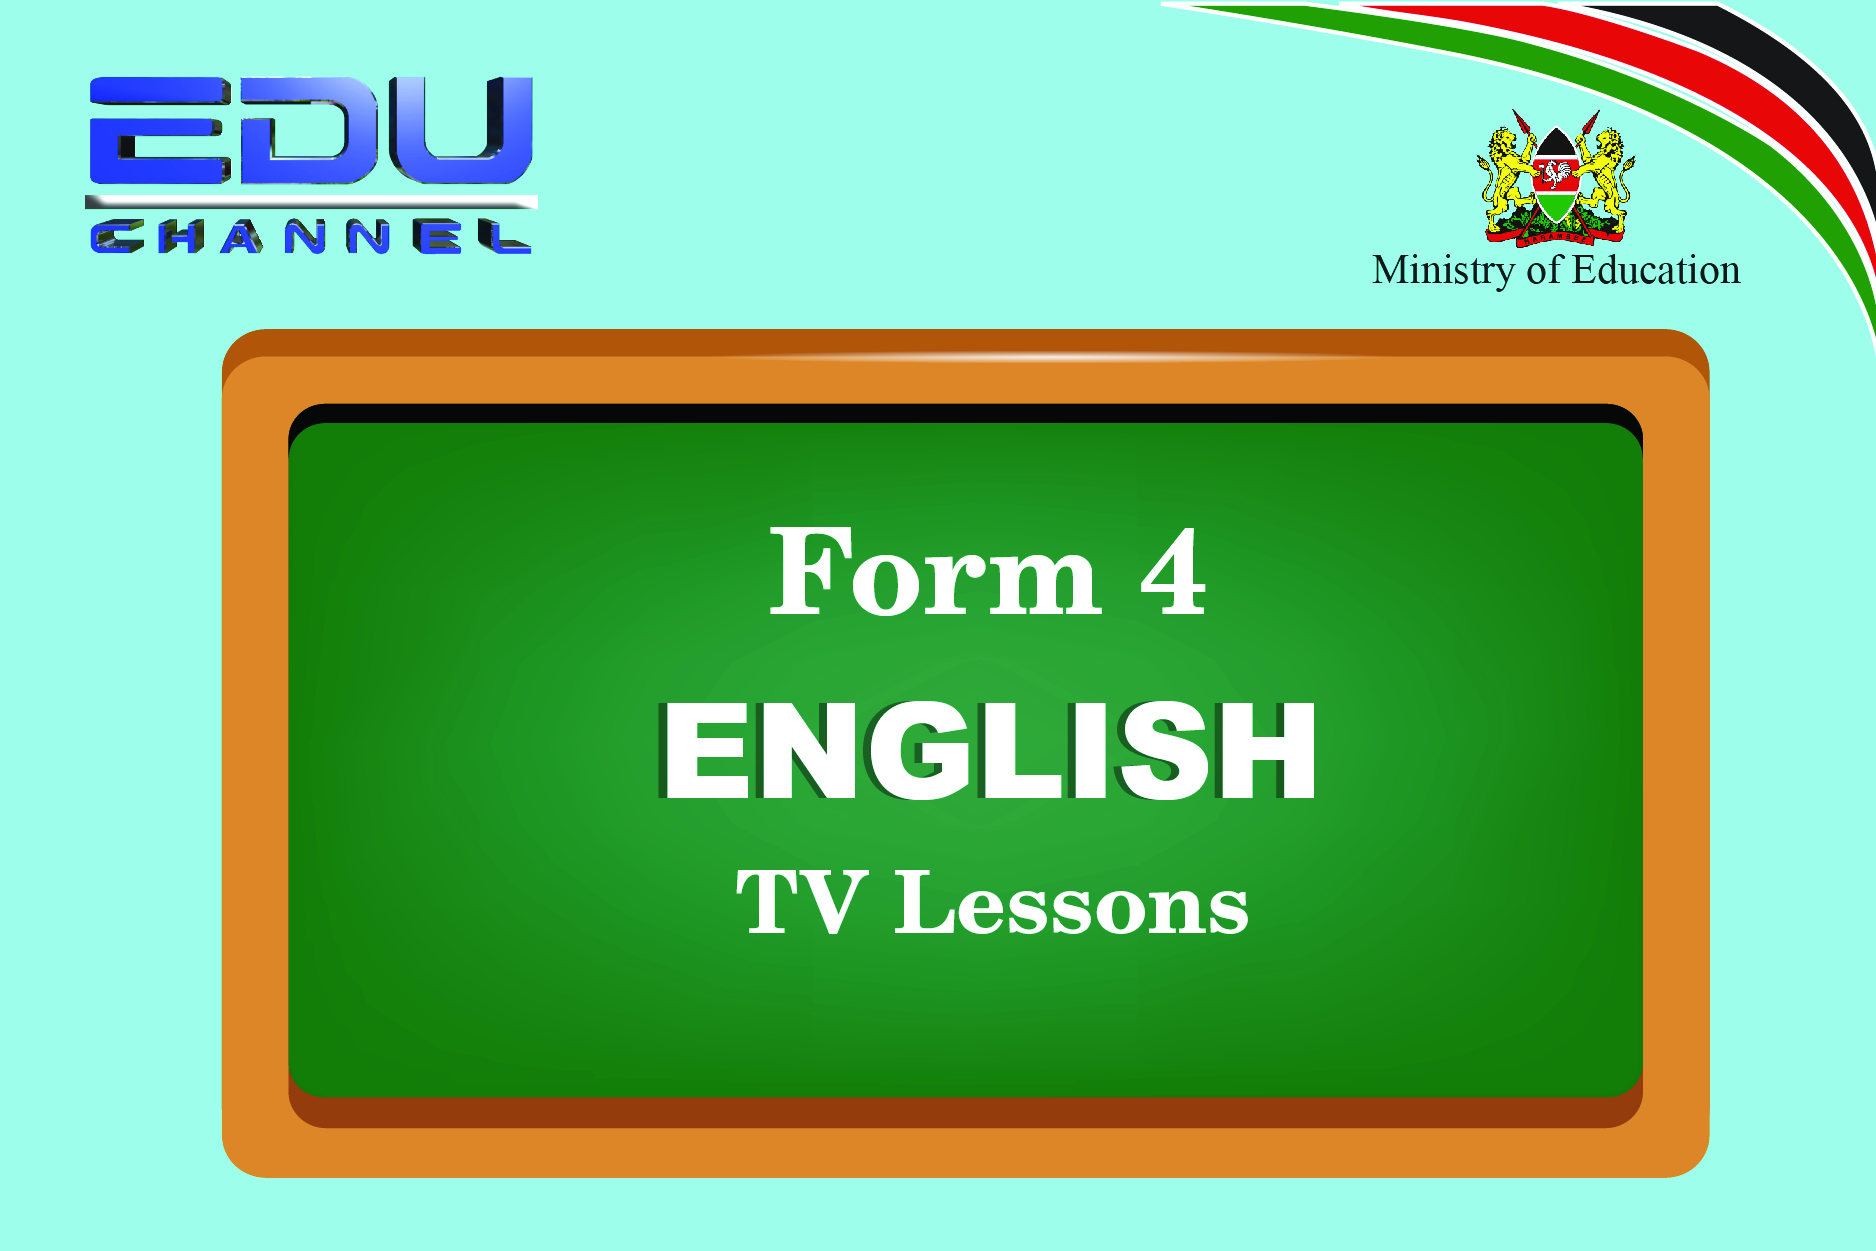 Form 4 English Lesson 1: Functions of nouns